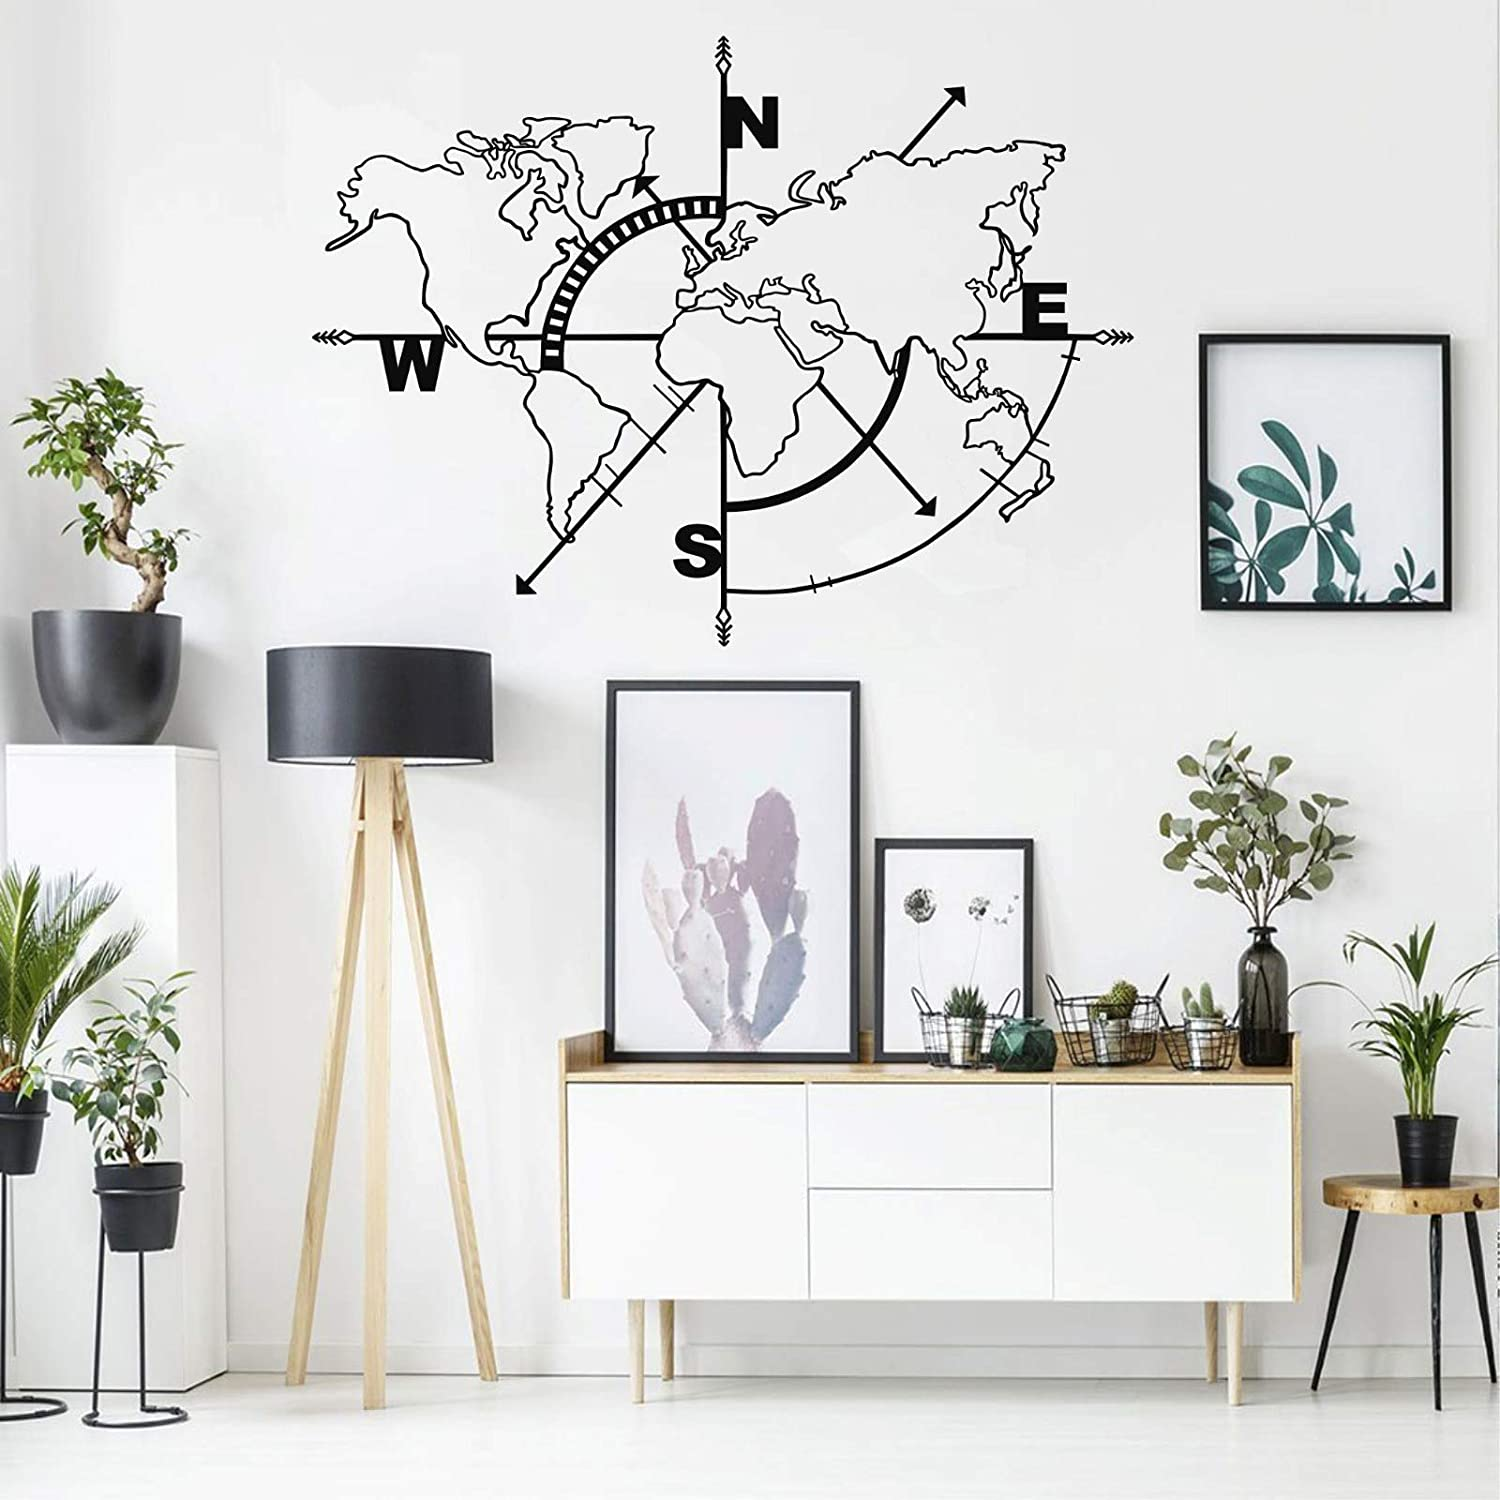 "Metal World Map Wall Art Compass, World Map Without Borders, Metal Wall Decor, Metal Sign, Wall Hangings (39""W x 30""H / 98x75 cm)"